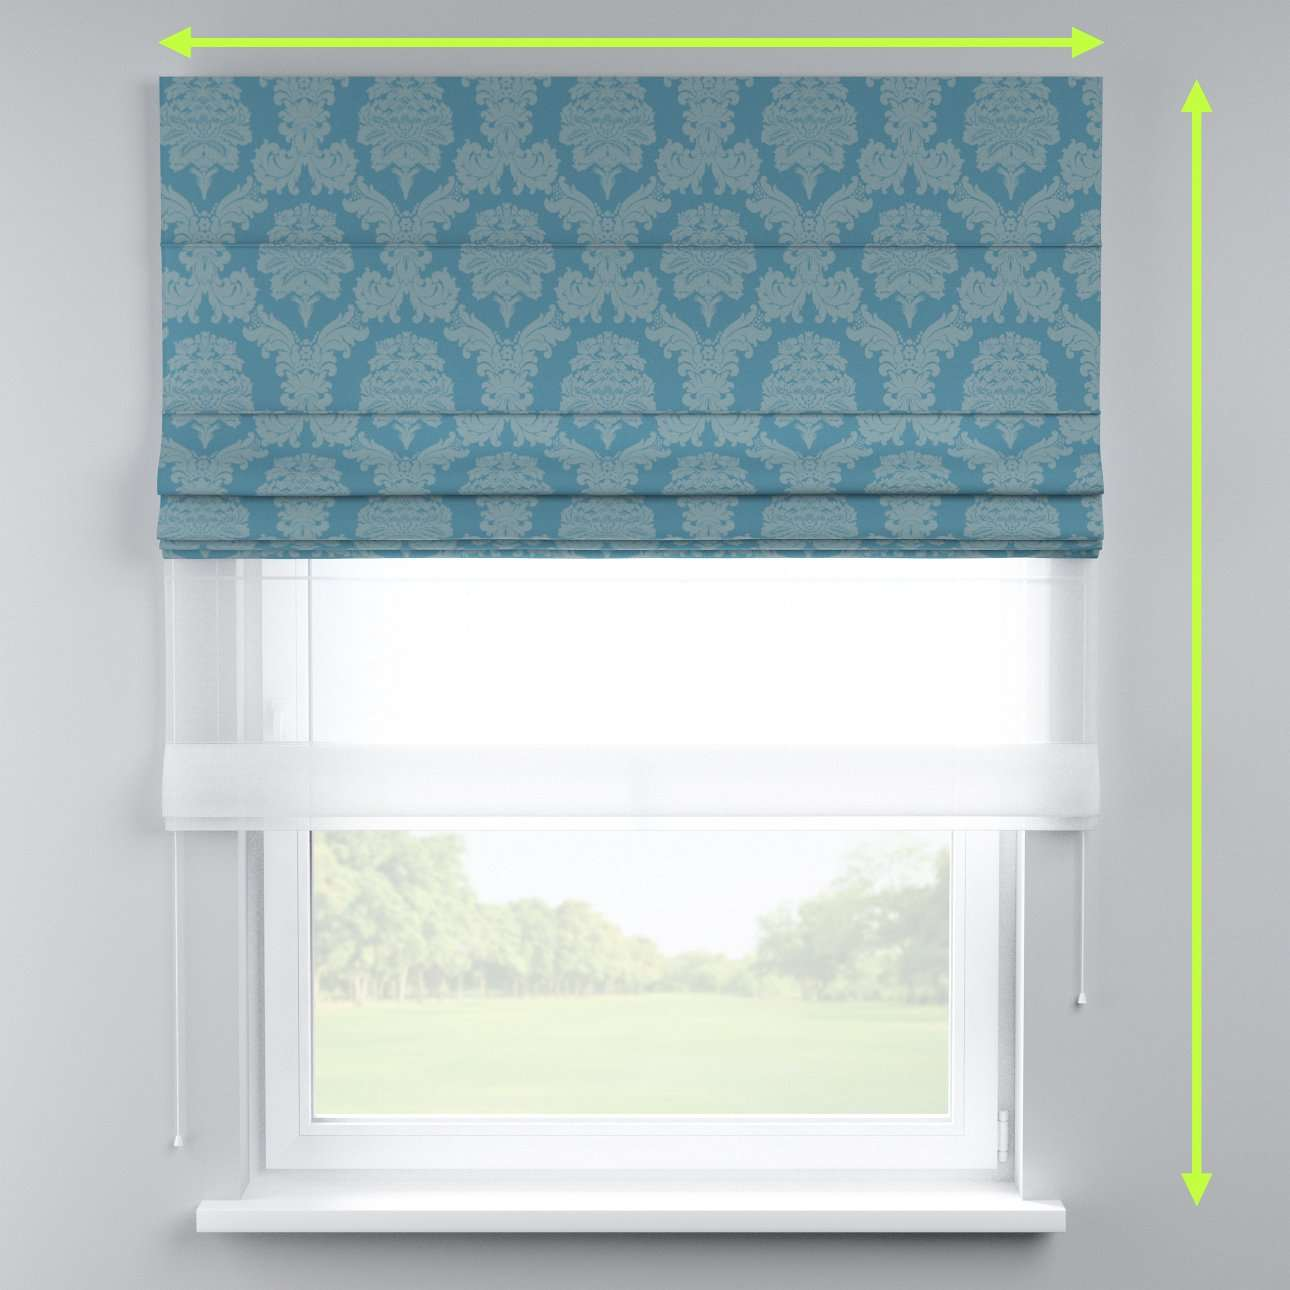 Voile and fabric roman blind (DUO II) in collection Damasco, fabric: 613-67